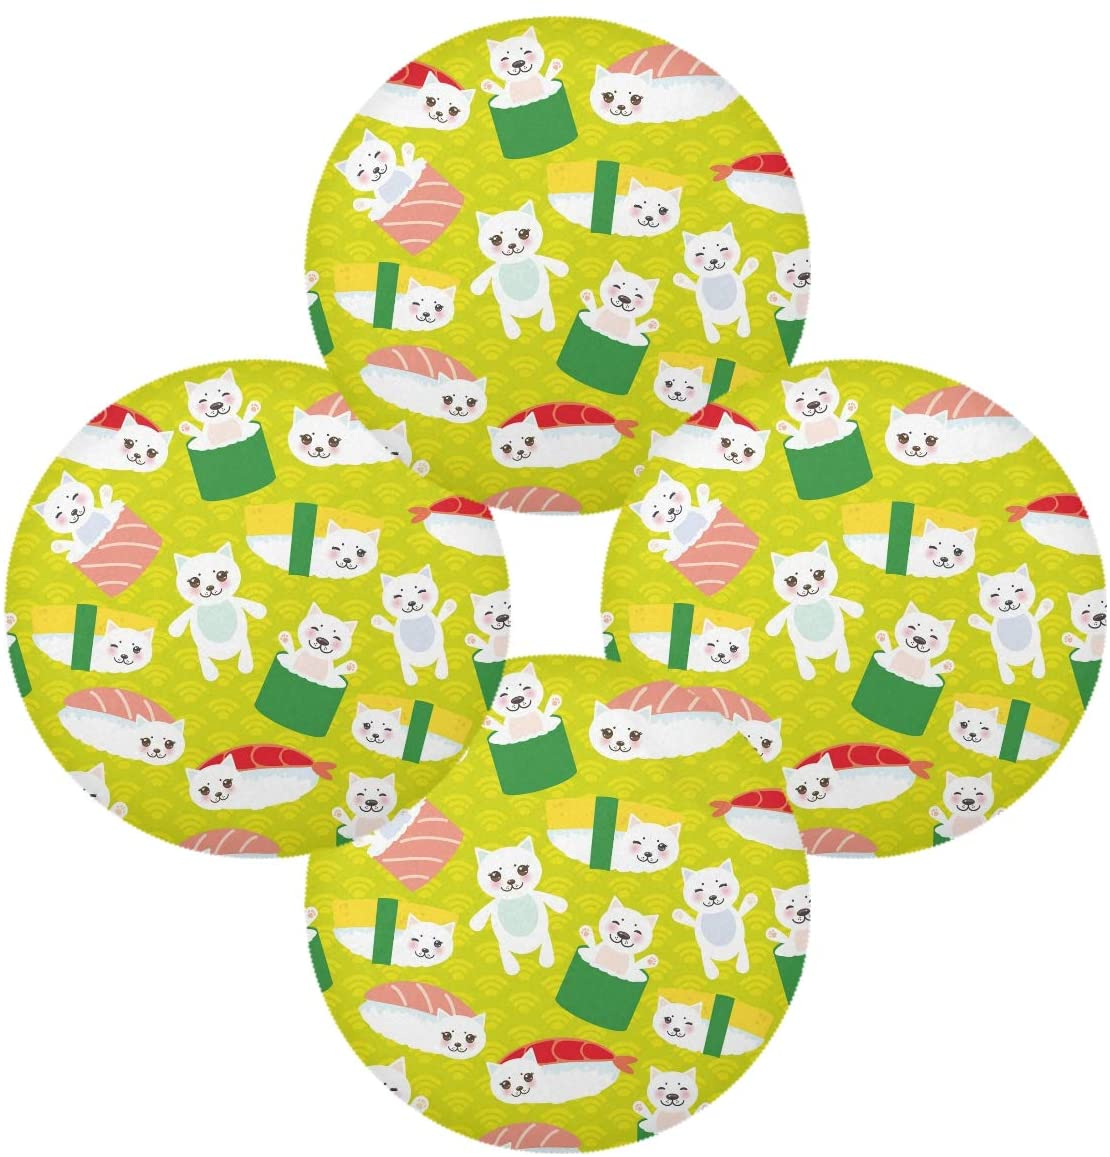 Bardic Naivey Animal Cat Sushi Pattern Round Placemats Set of 6 Heat Resistant Non-Slip Dining Table Mats for Kichen Dining Table Decor